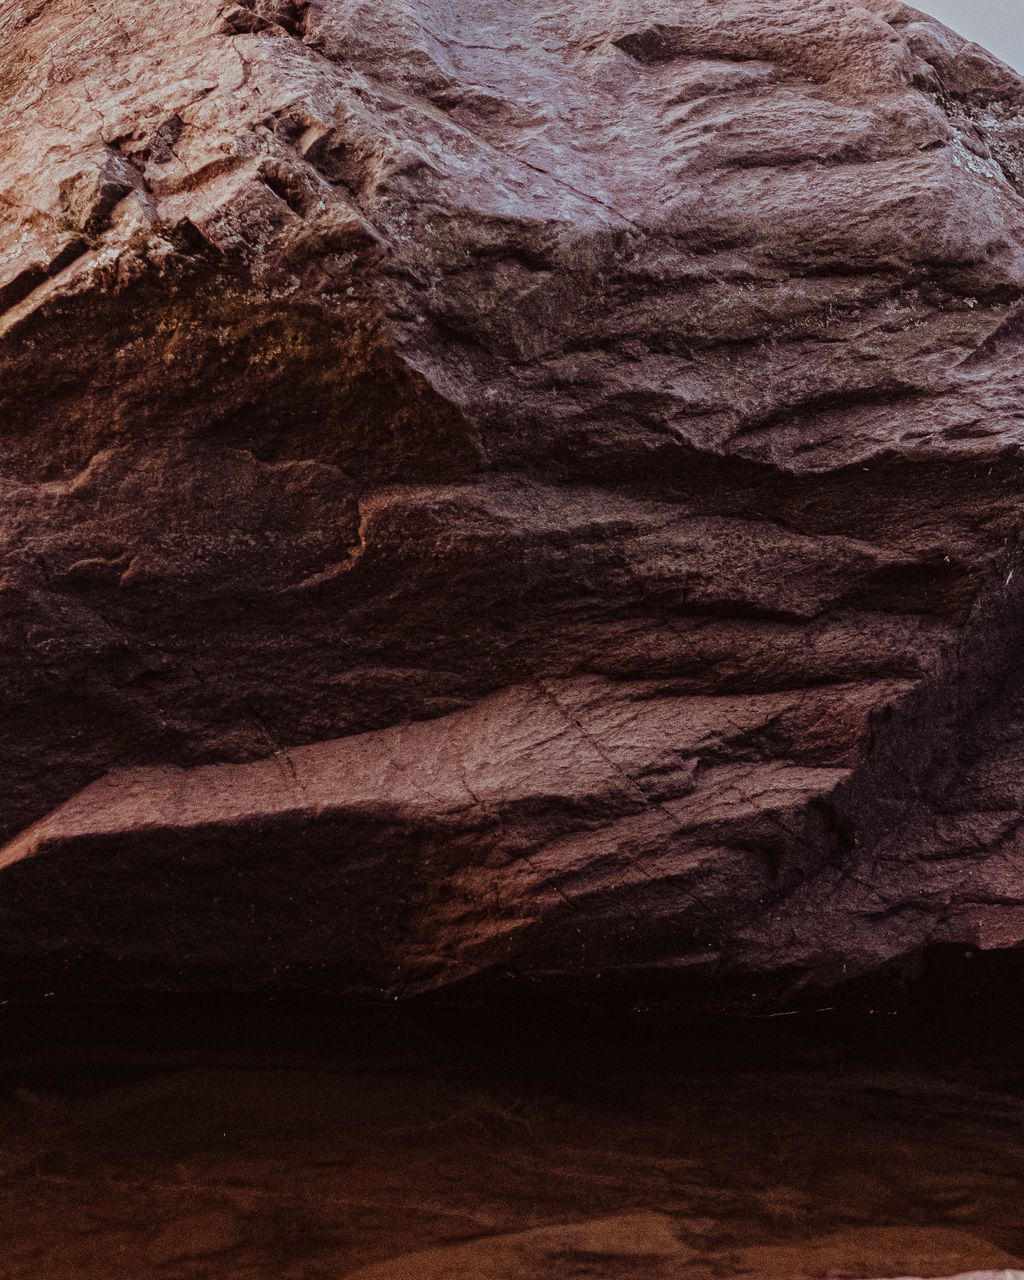 no people, indoors, rock, close-up, solid, textured, backgrounds, geology, rough, rock - object, full frame, pattern, brown, rock formation, nature, wood - material, still life, food and drink, single object, eroded, sandstone